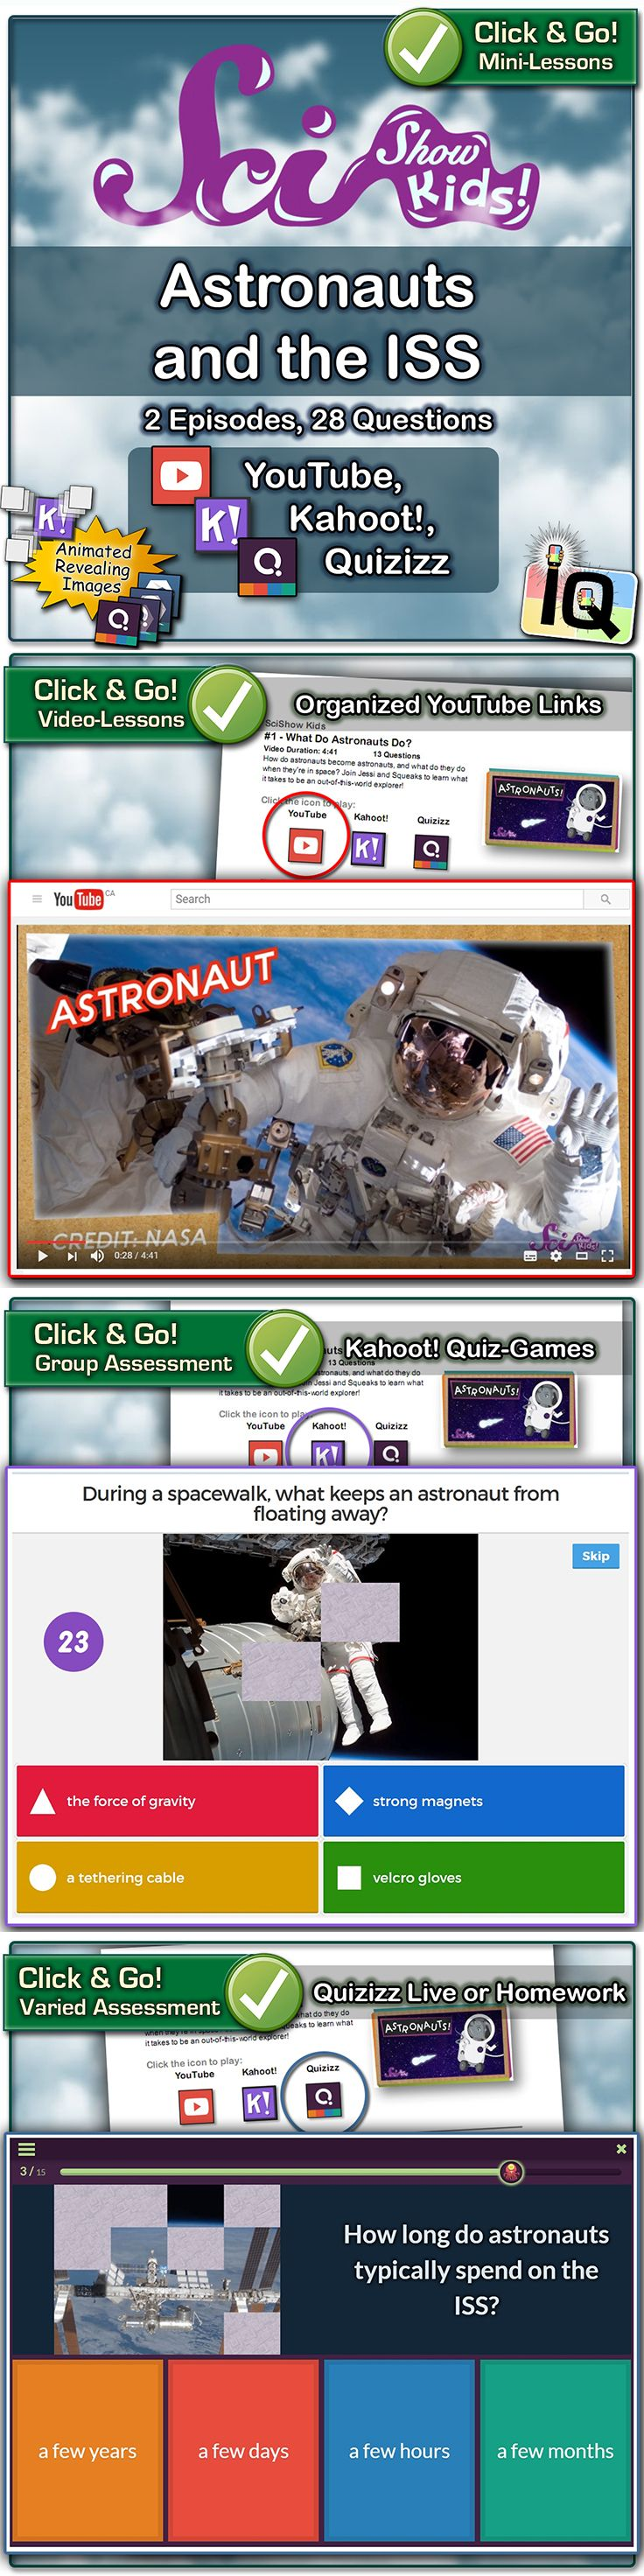 Just Point and Click for instant Mini-Lessons with Game-Based Assessment! ... SciShow Kids Episodes: #1 - What Do Astronauts Do? (learn what it takes to be an out-of-this-world explorer) #2 - Take a Tour of the Space Station (learn about the International Space Station) ... https://www.teacherspayteachers.com/Product/SciShow-Kids-Astronauts-and-the-ISS-Quizizz-and-Kahoot-3005789